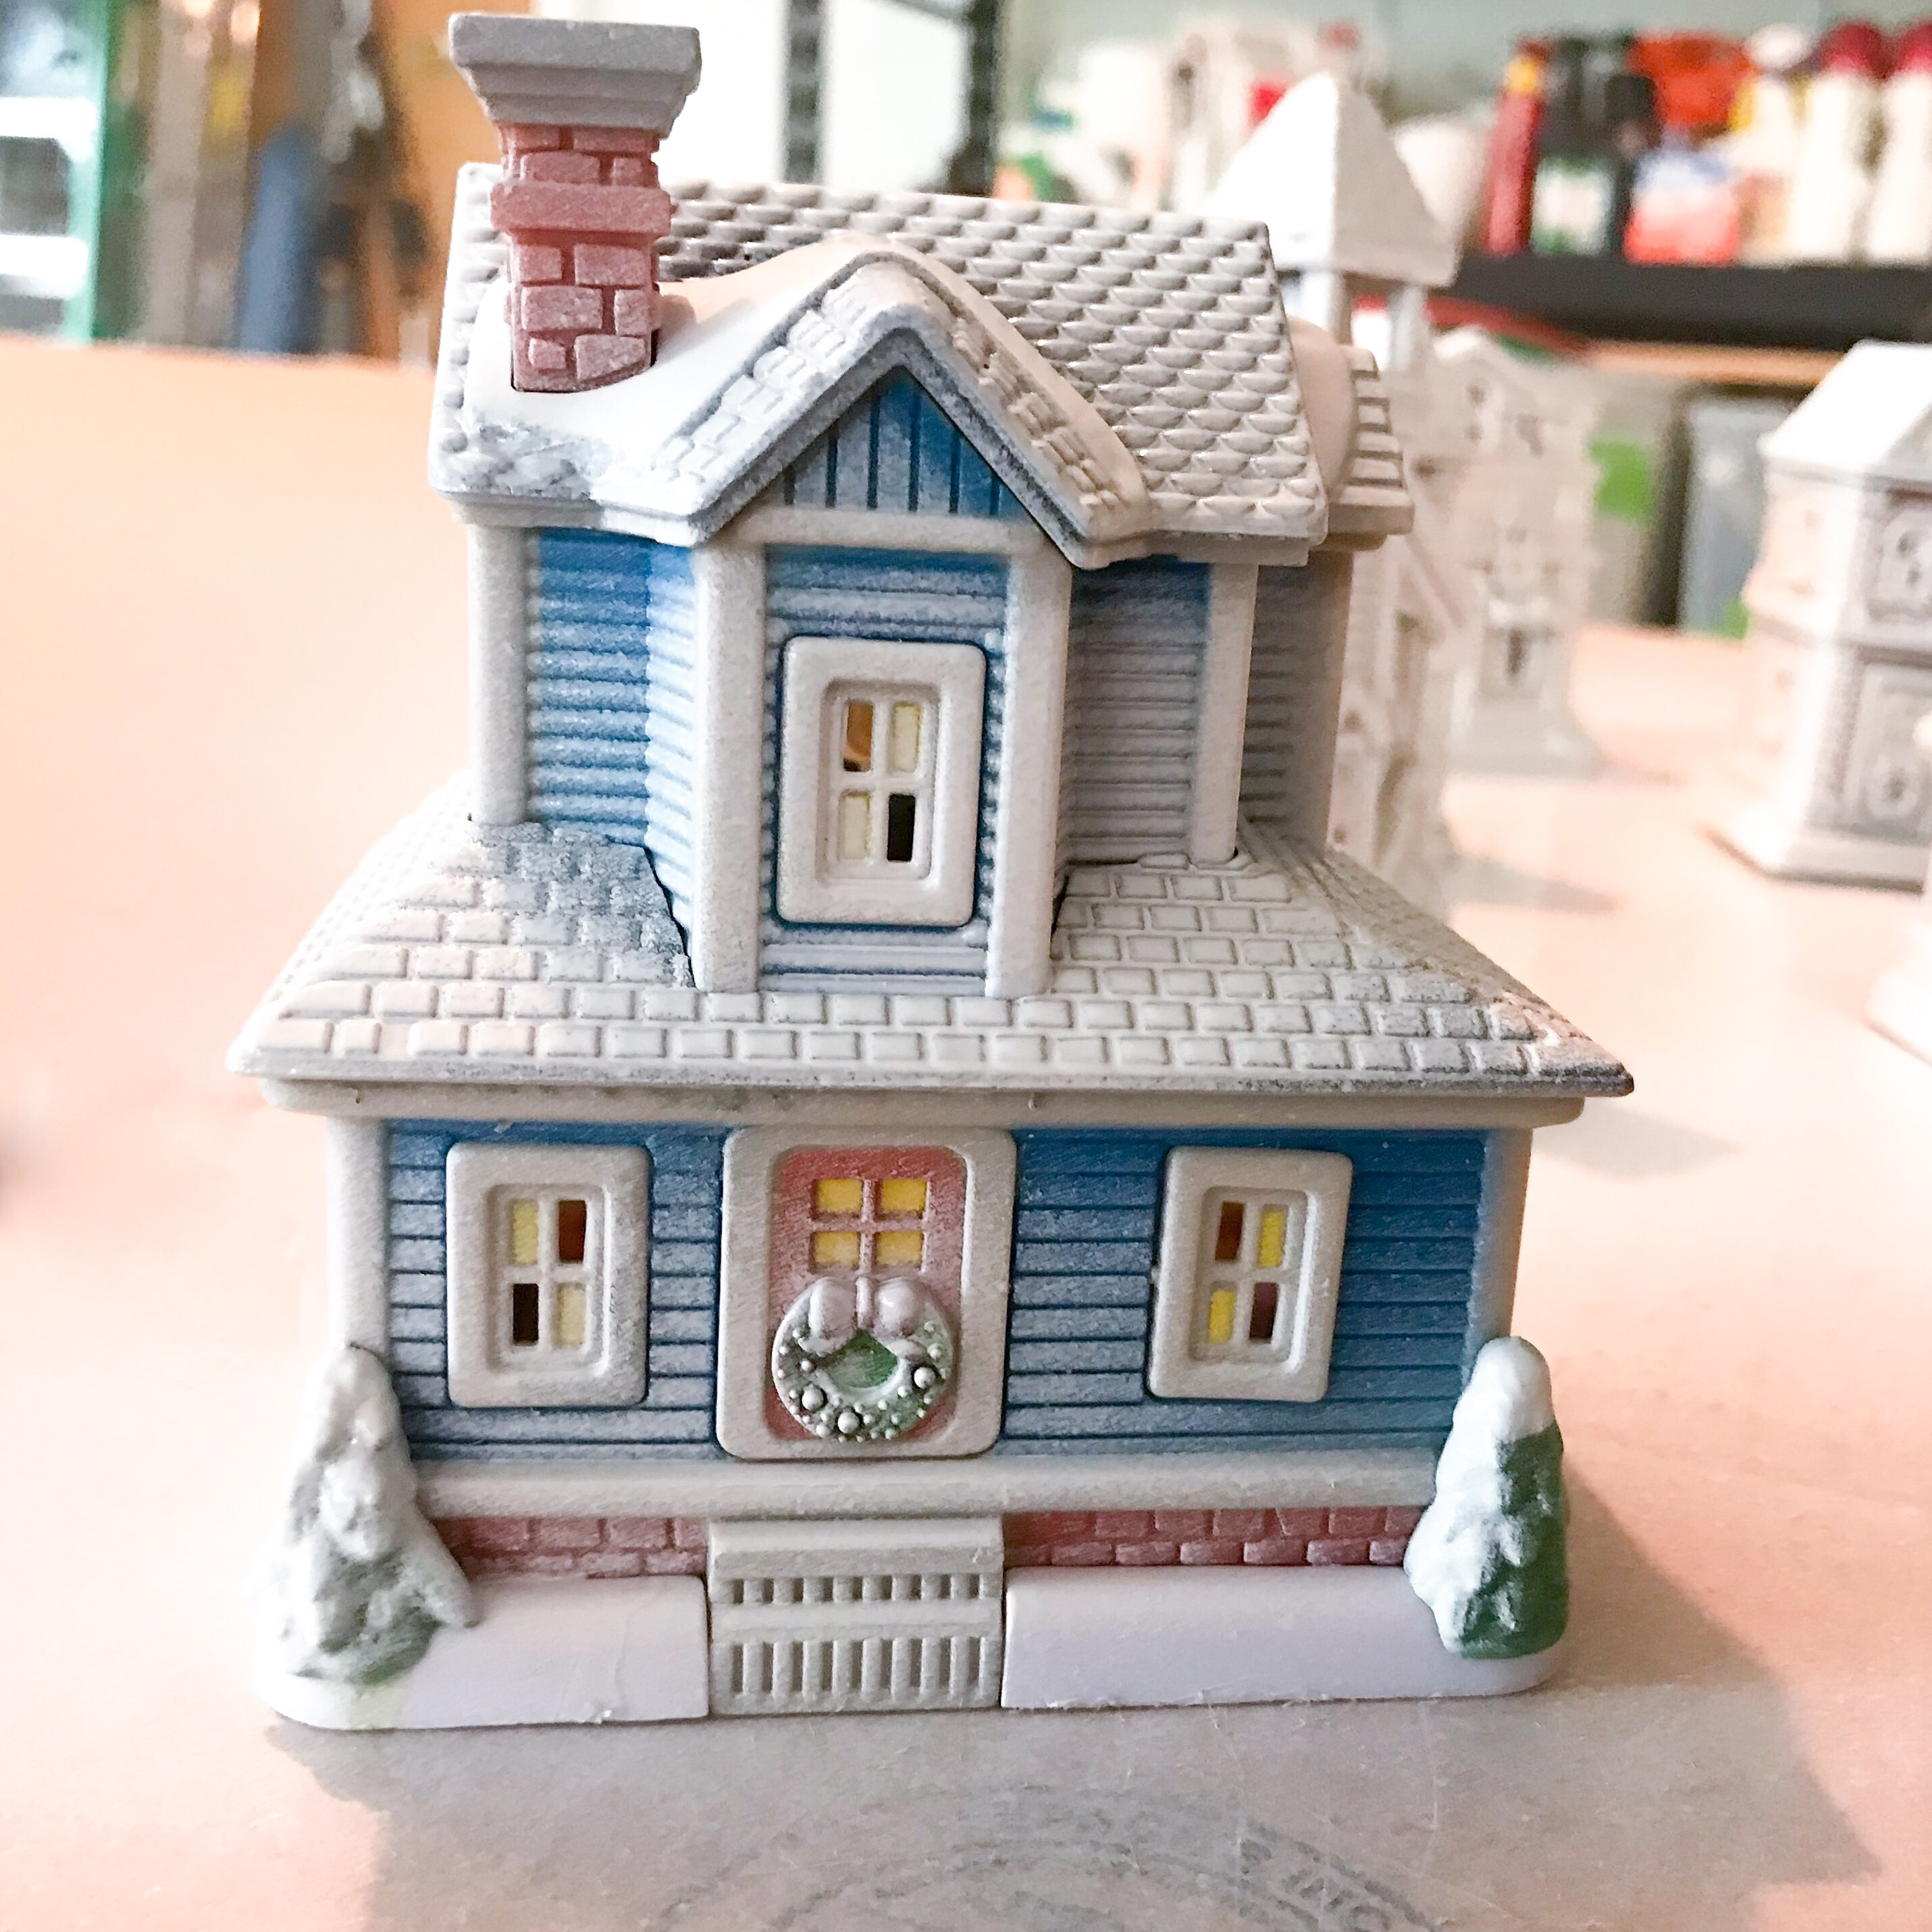 How To Store Christmas Village Houses.Dollar Store Christmas Village House With Snow South